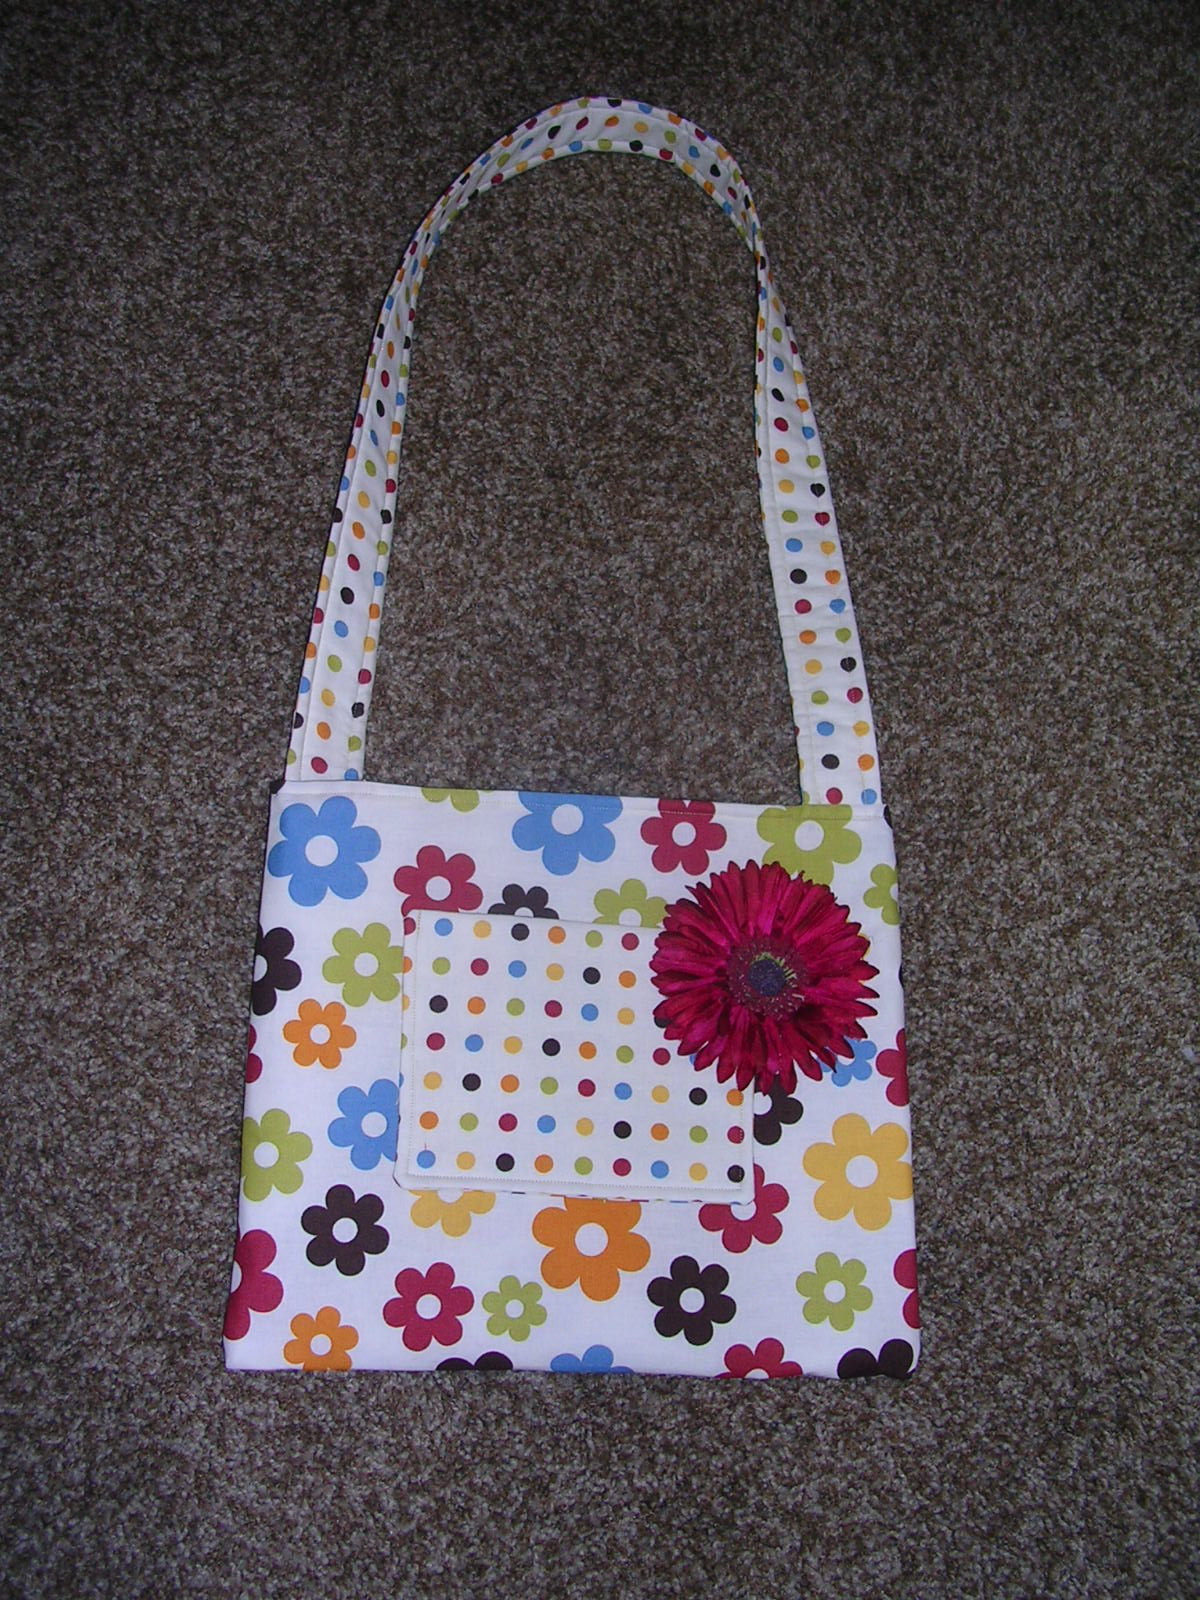 Therapeutic Crafting Little Girls Shoulder Bag Tutorial